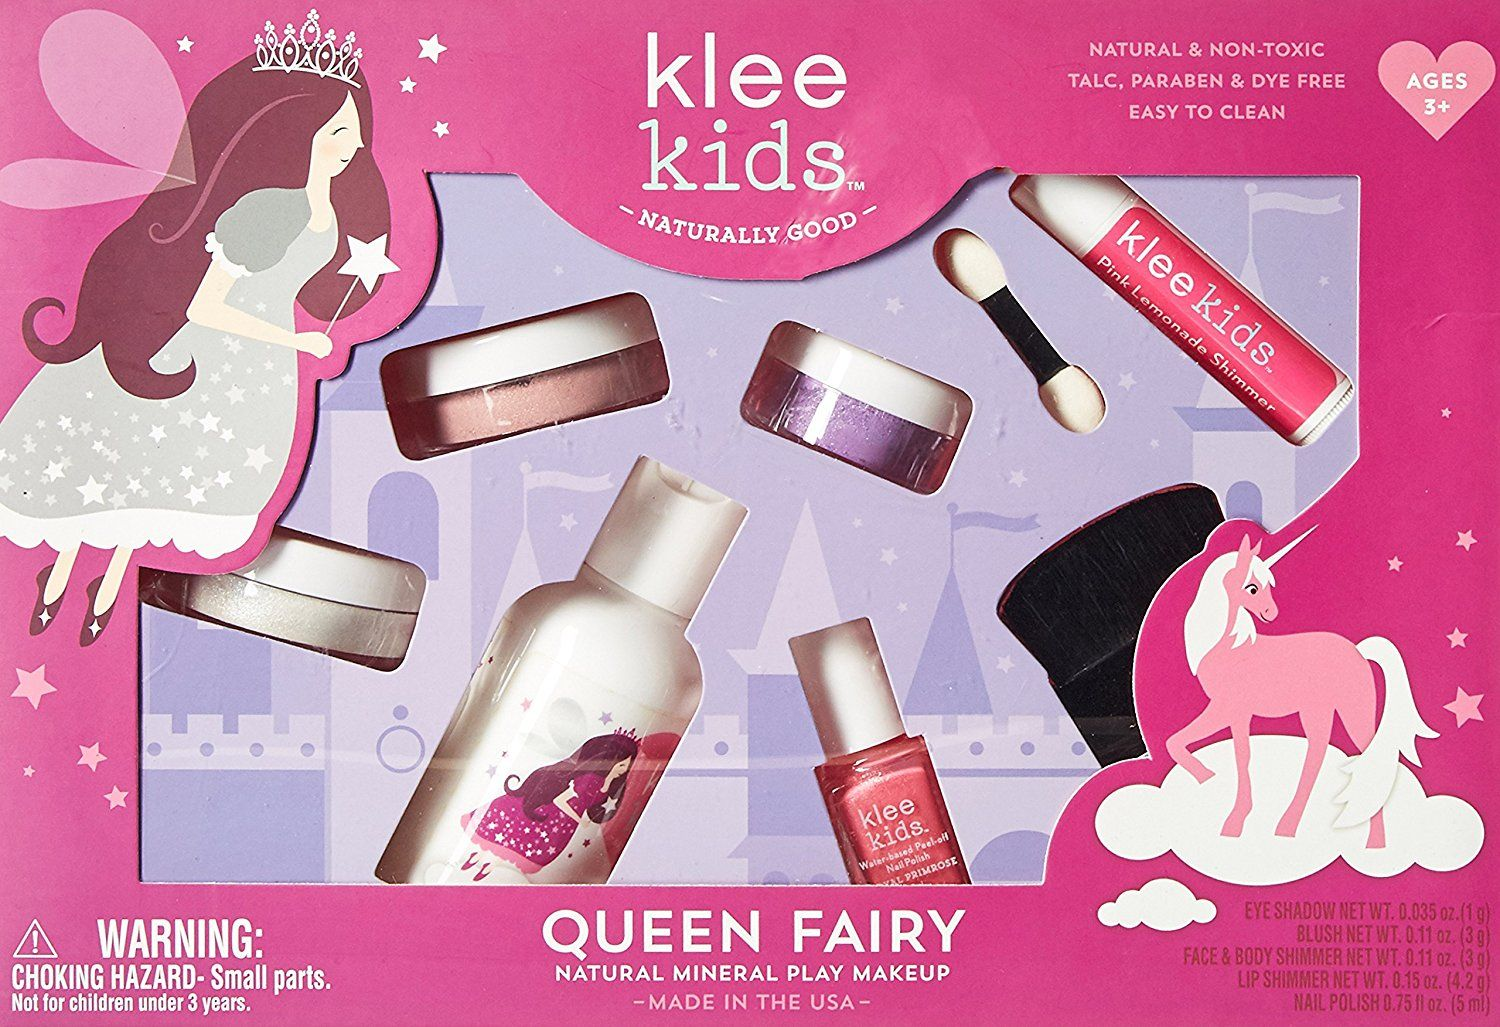 Best Natural Makeup - Luna Star Naturals Klee Kids Natural